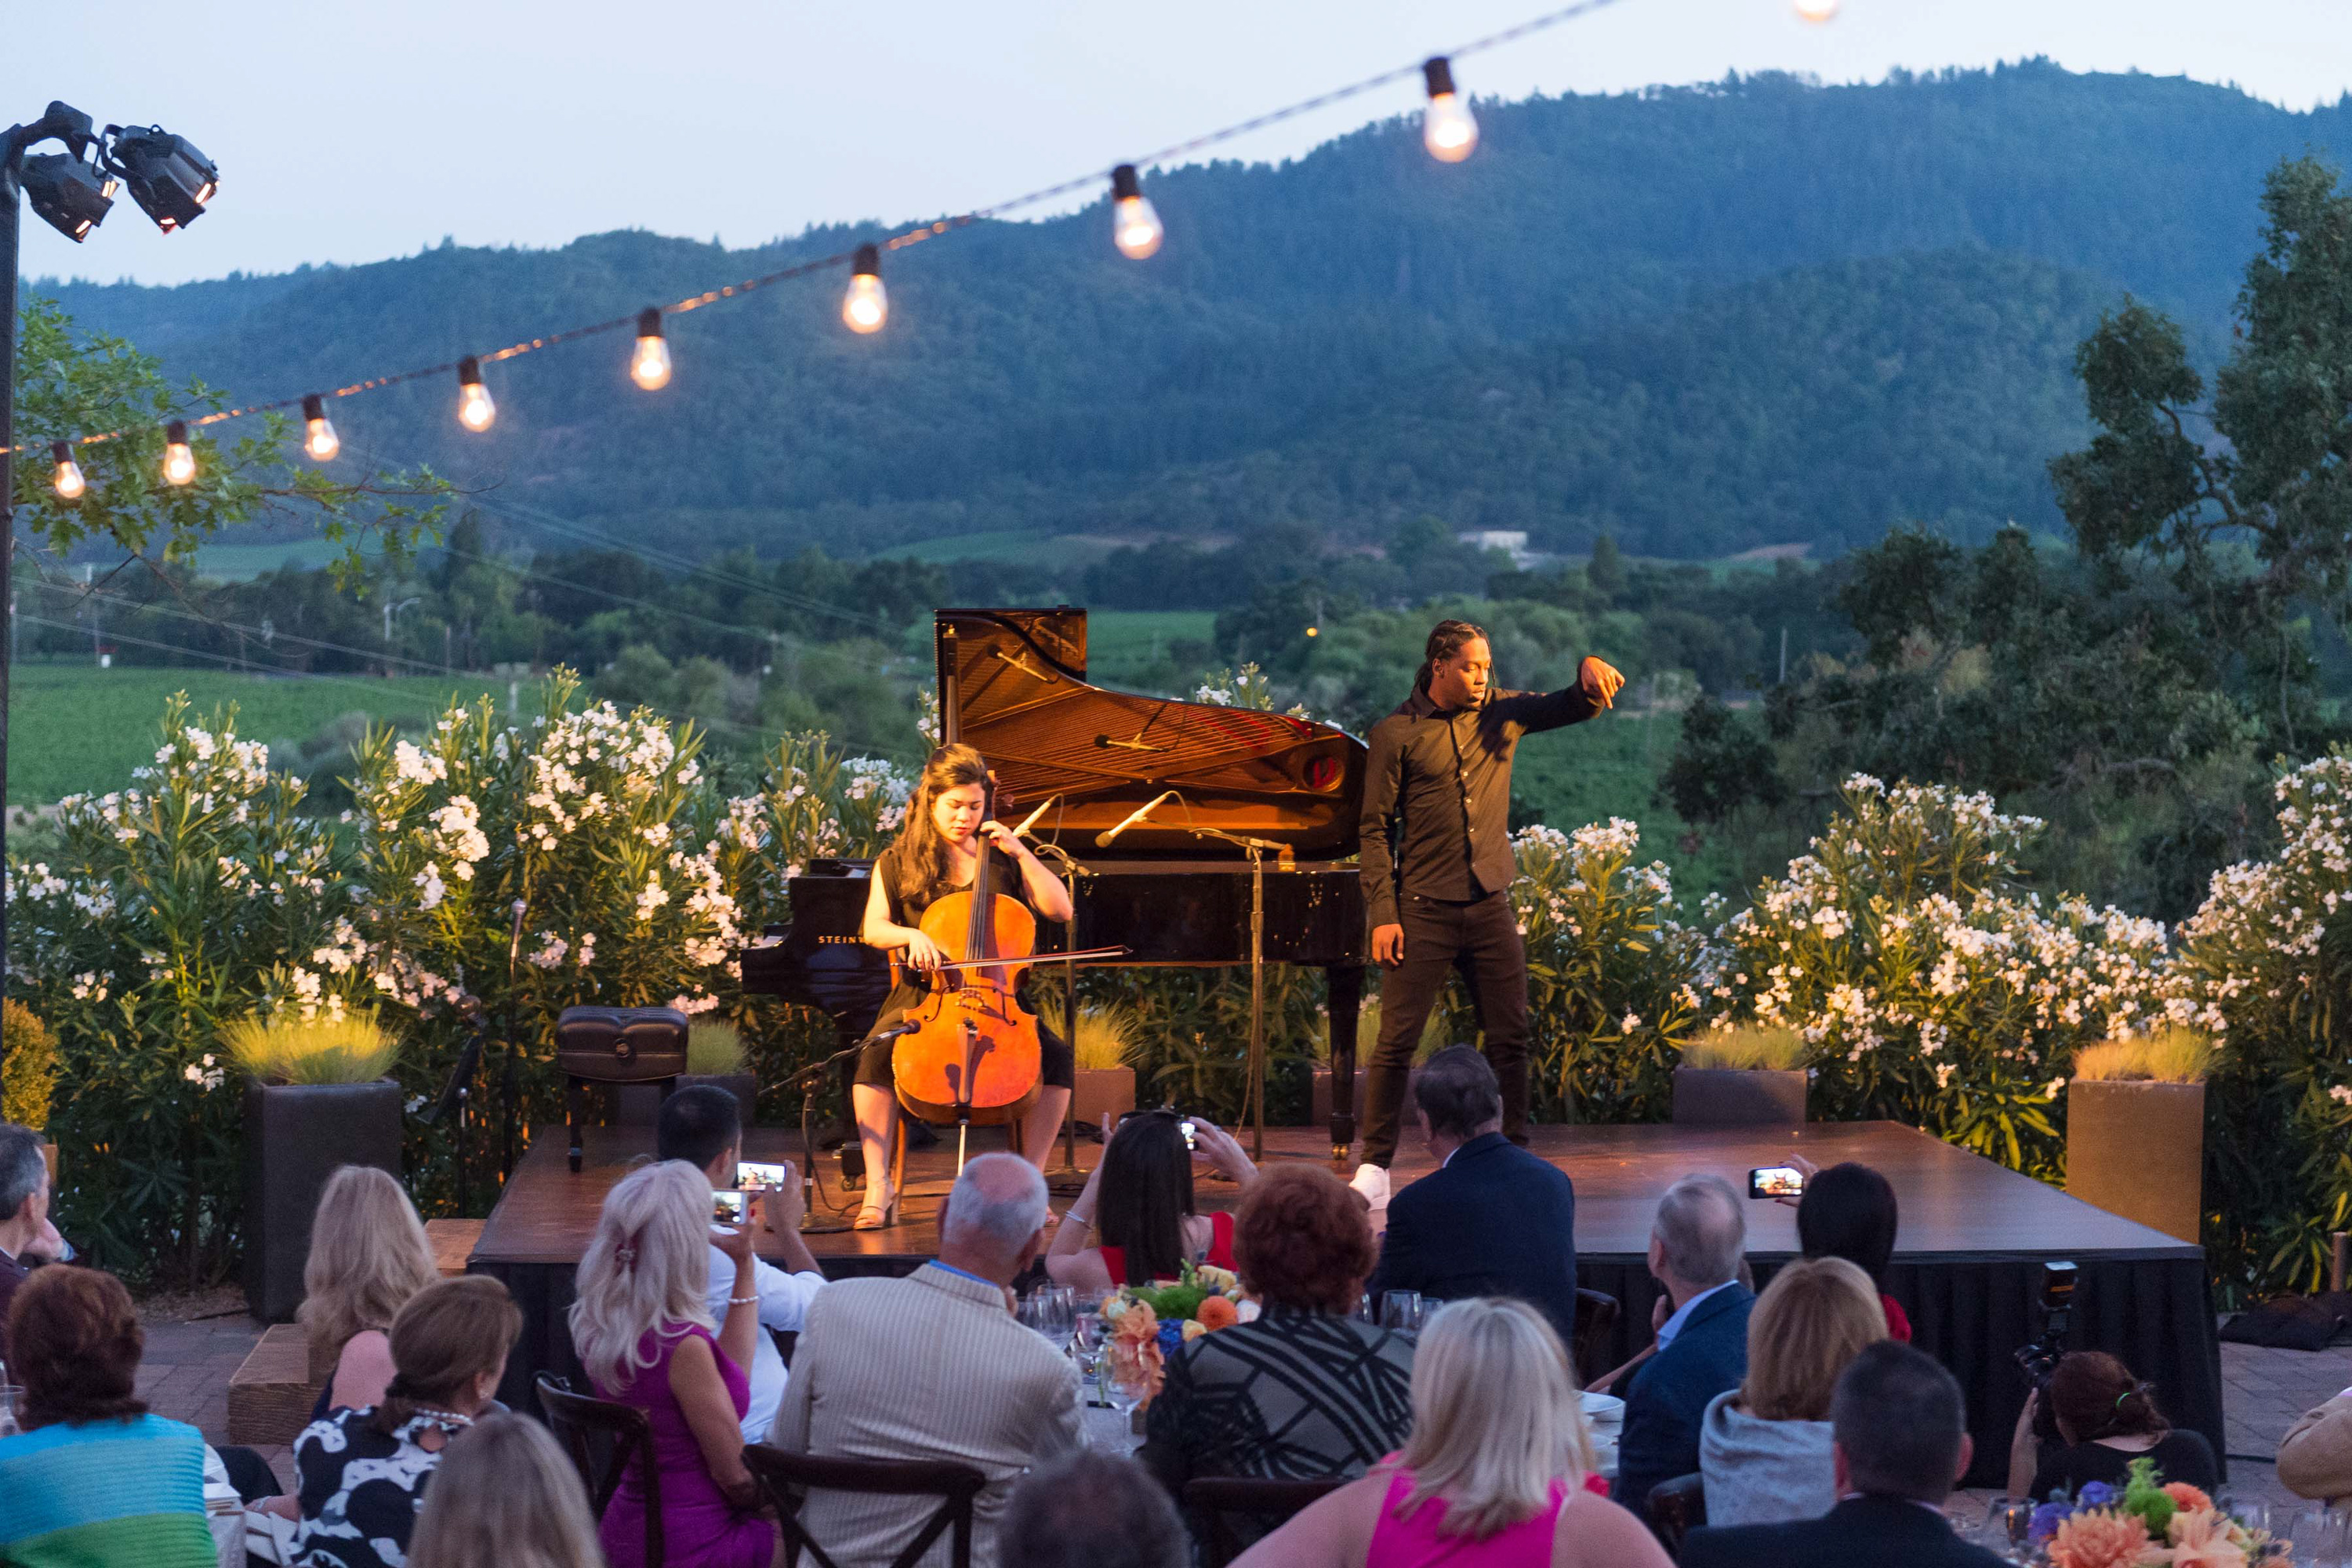 OAKVILLE, CA - July 14 - Mariko Wyrick and Ron Primetyme Miles attend Festival Napa Valley Founders Dinner at Cardinale Winery July 14th 2016 at Cardinale Winery, . 7600 St Helena Hwy in Oakville, CA (Photo Credit: Susana Bates for Drew Altizer Photography for Drew Altizer Photography)